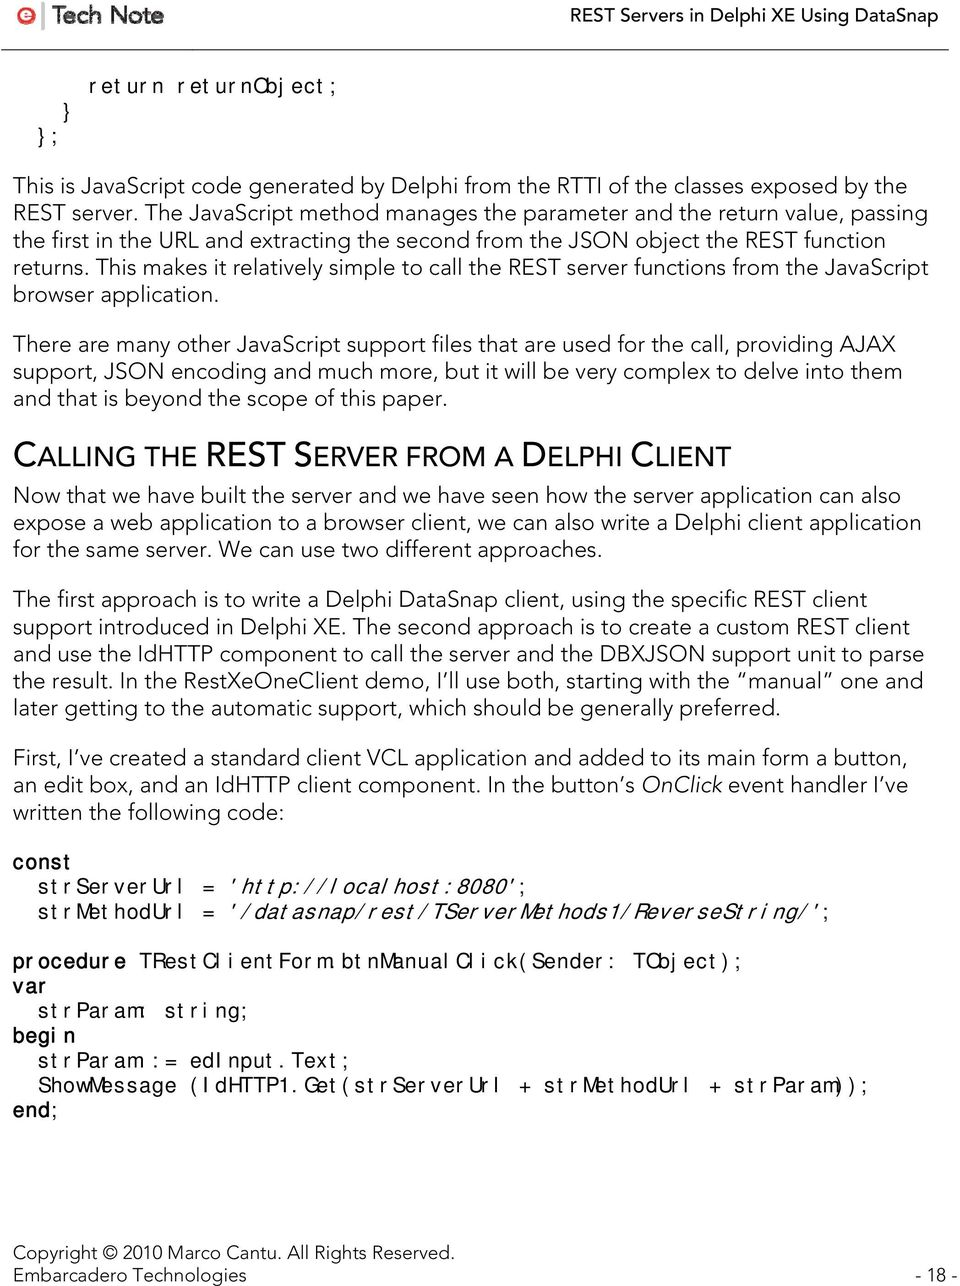 REST Servers in Delphi XE Using DataSnap - PDF